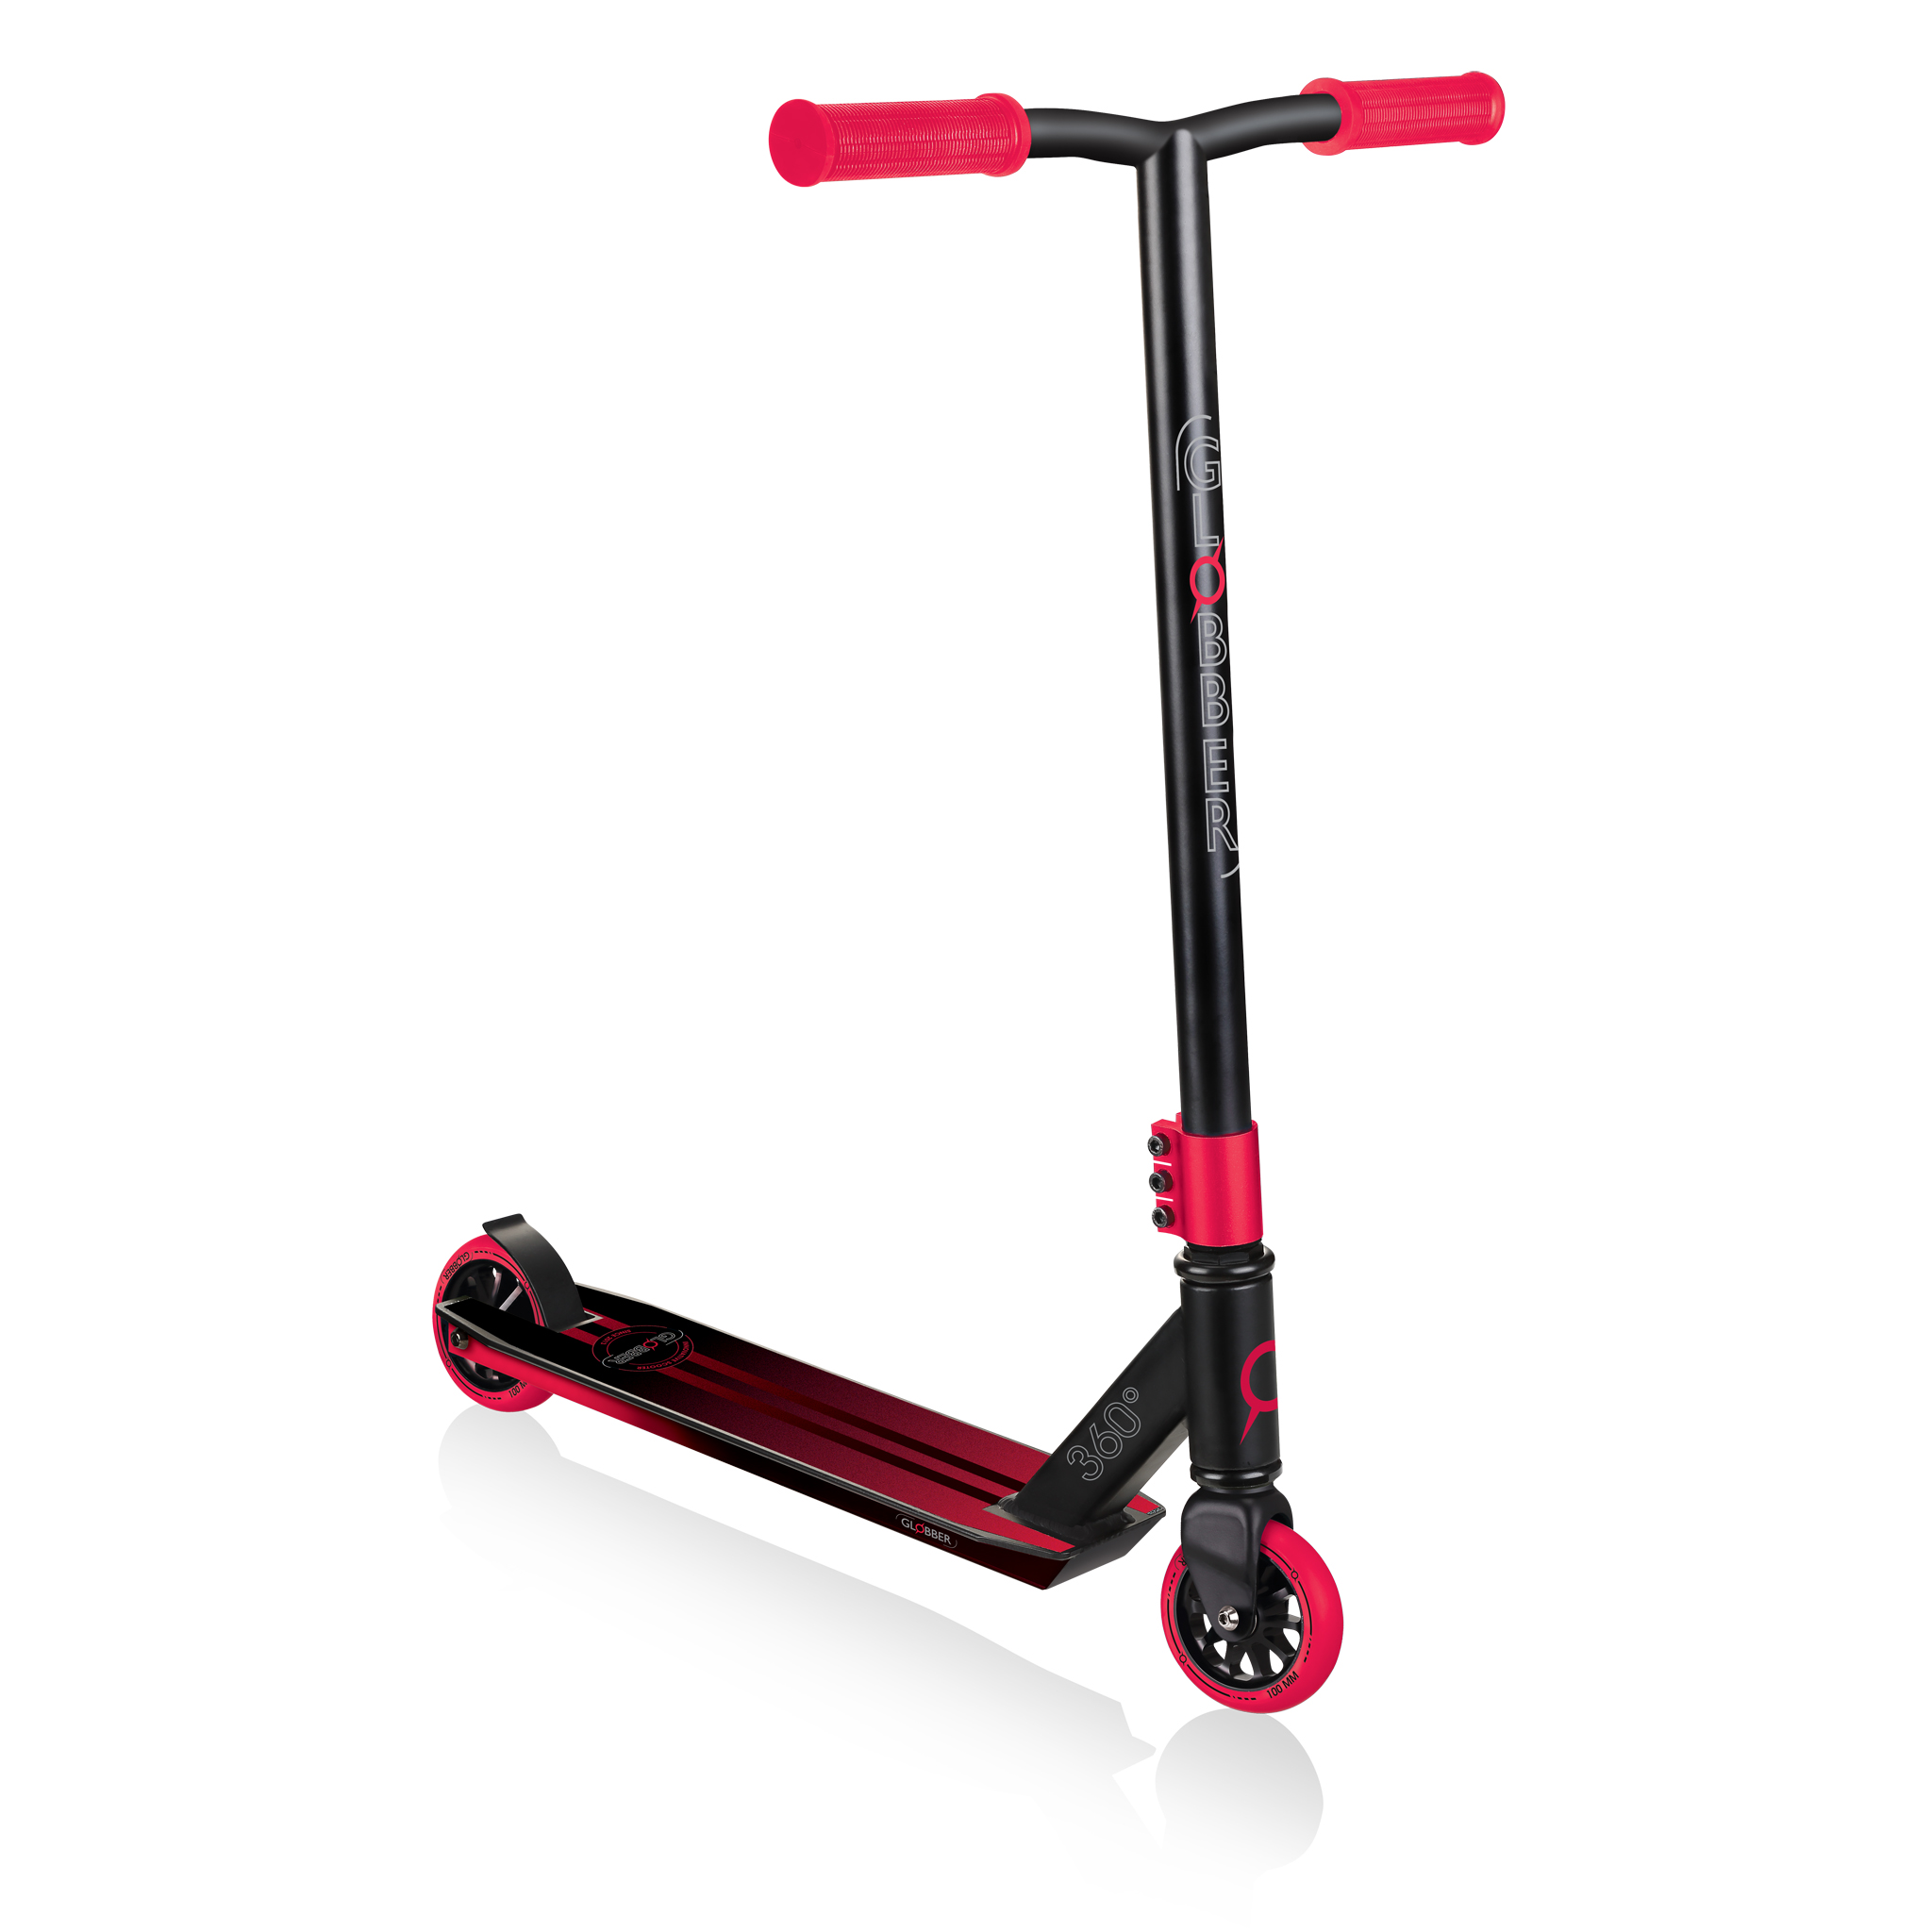 Globber GS 360 is the best stunt scooter for beginners